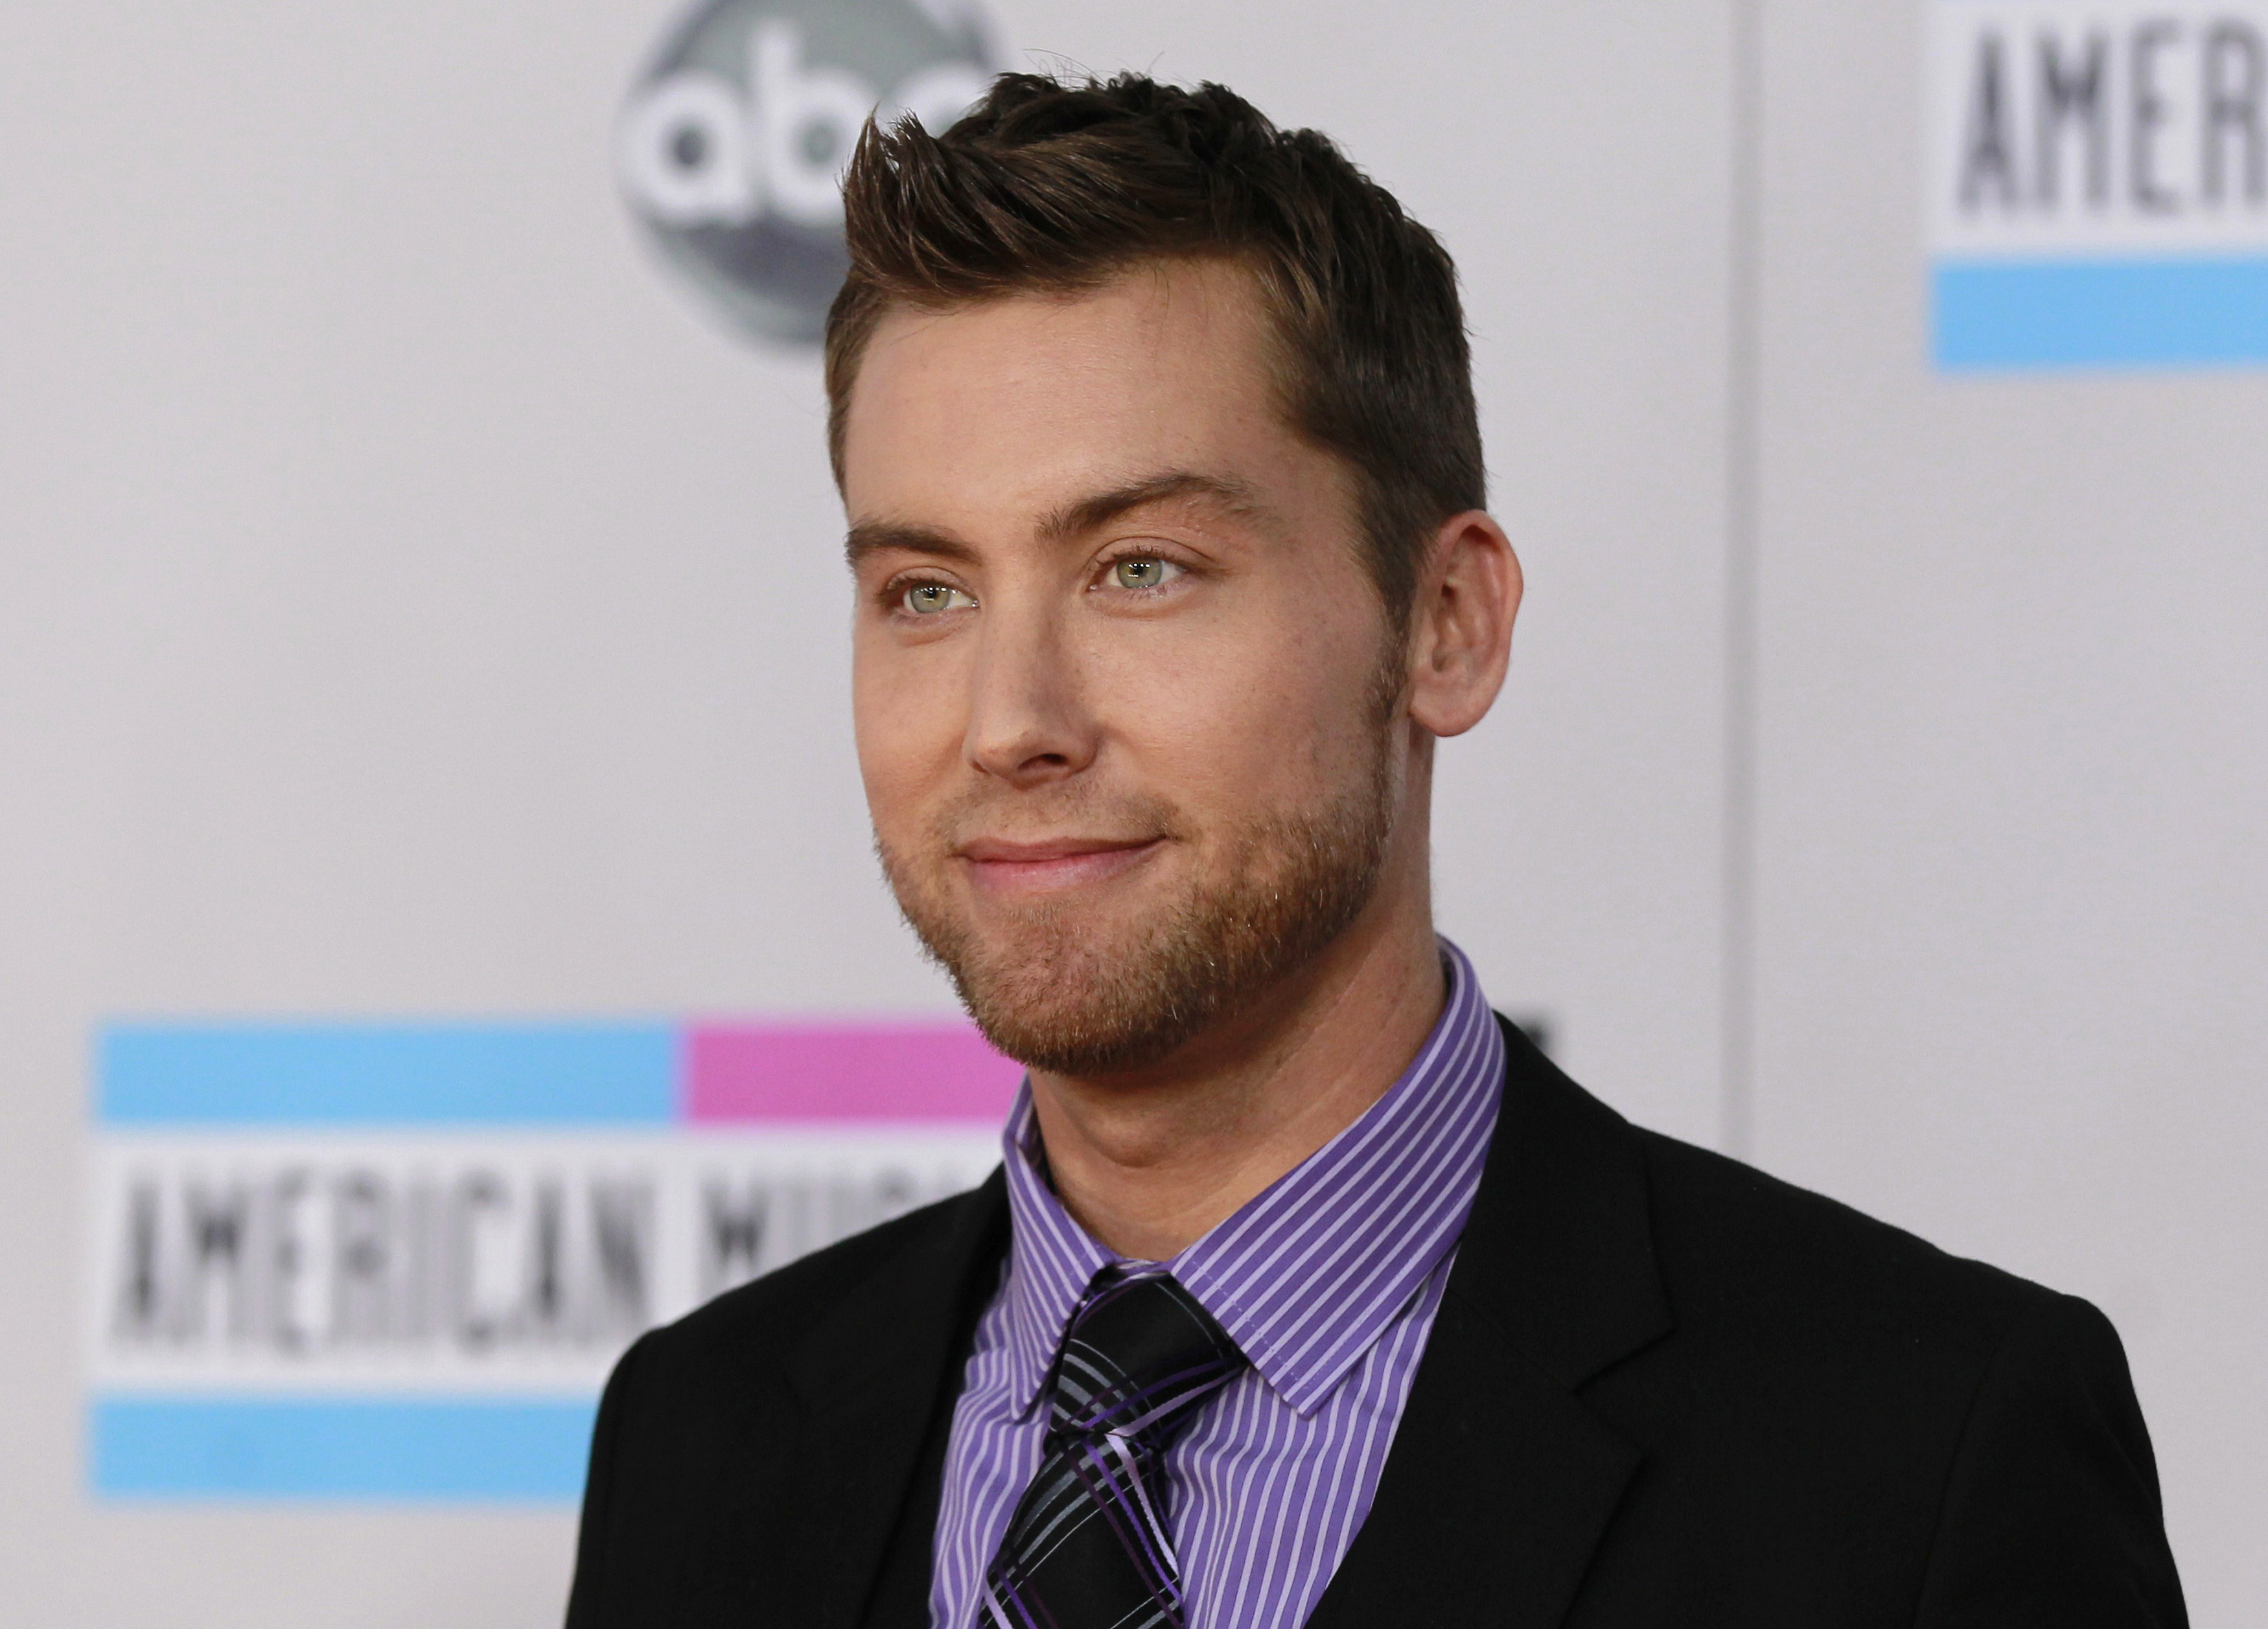 Singer Lance Bass arrives at the 2011 American Music Awards in Los Angeles November 20, 2011.   REUTERS/Danny Moloshok (UNITED STATES - Tags: ENTERTAINMENT) (AMA-ARRIVALS) - RTR2U9EO